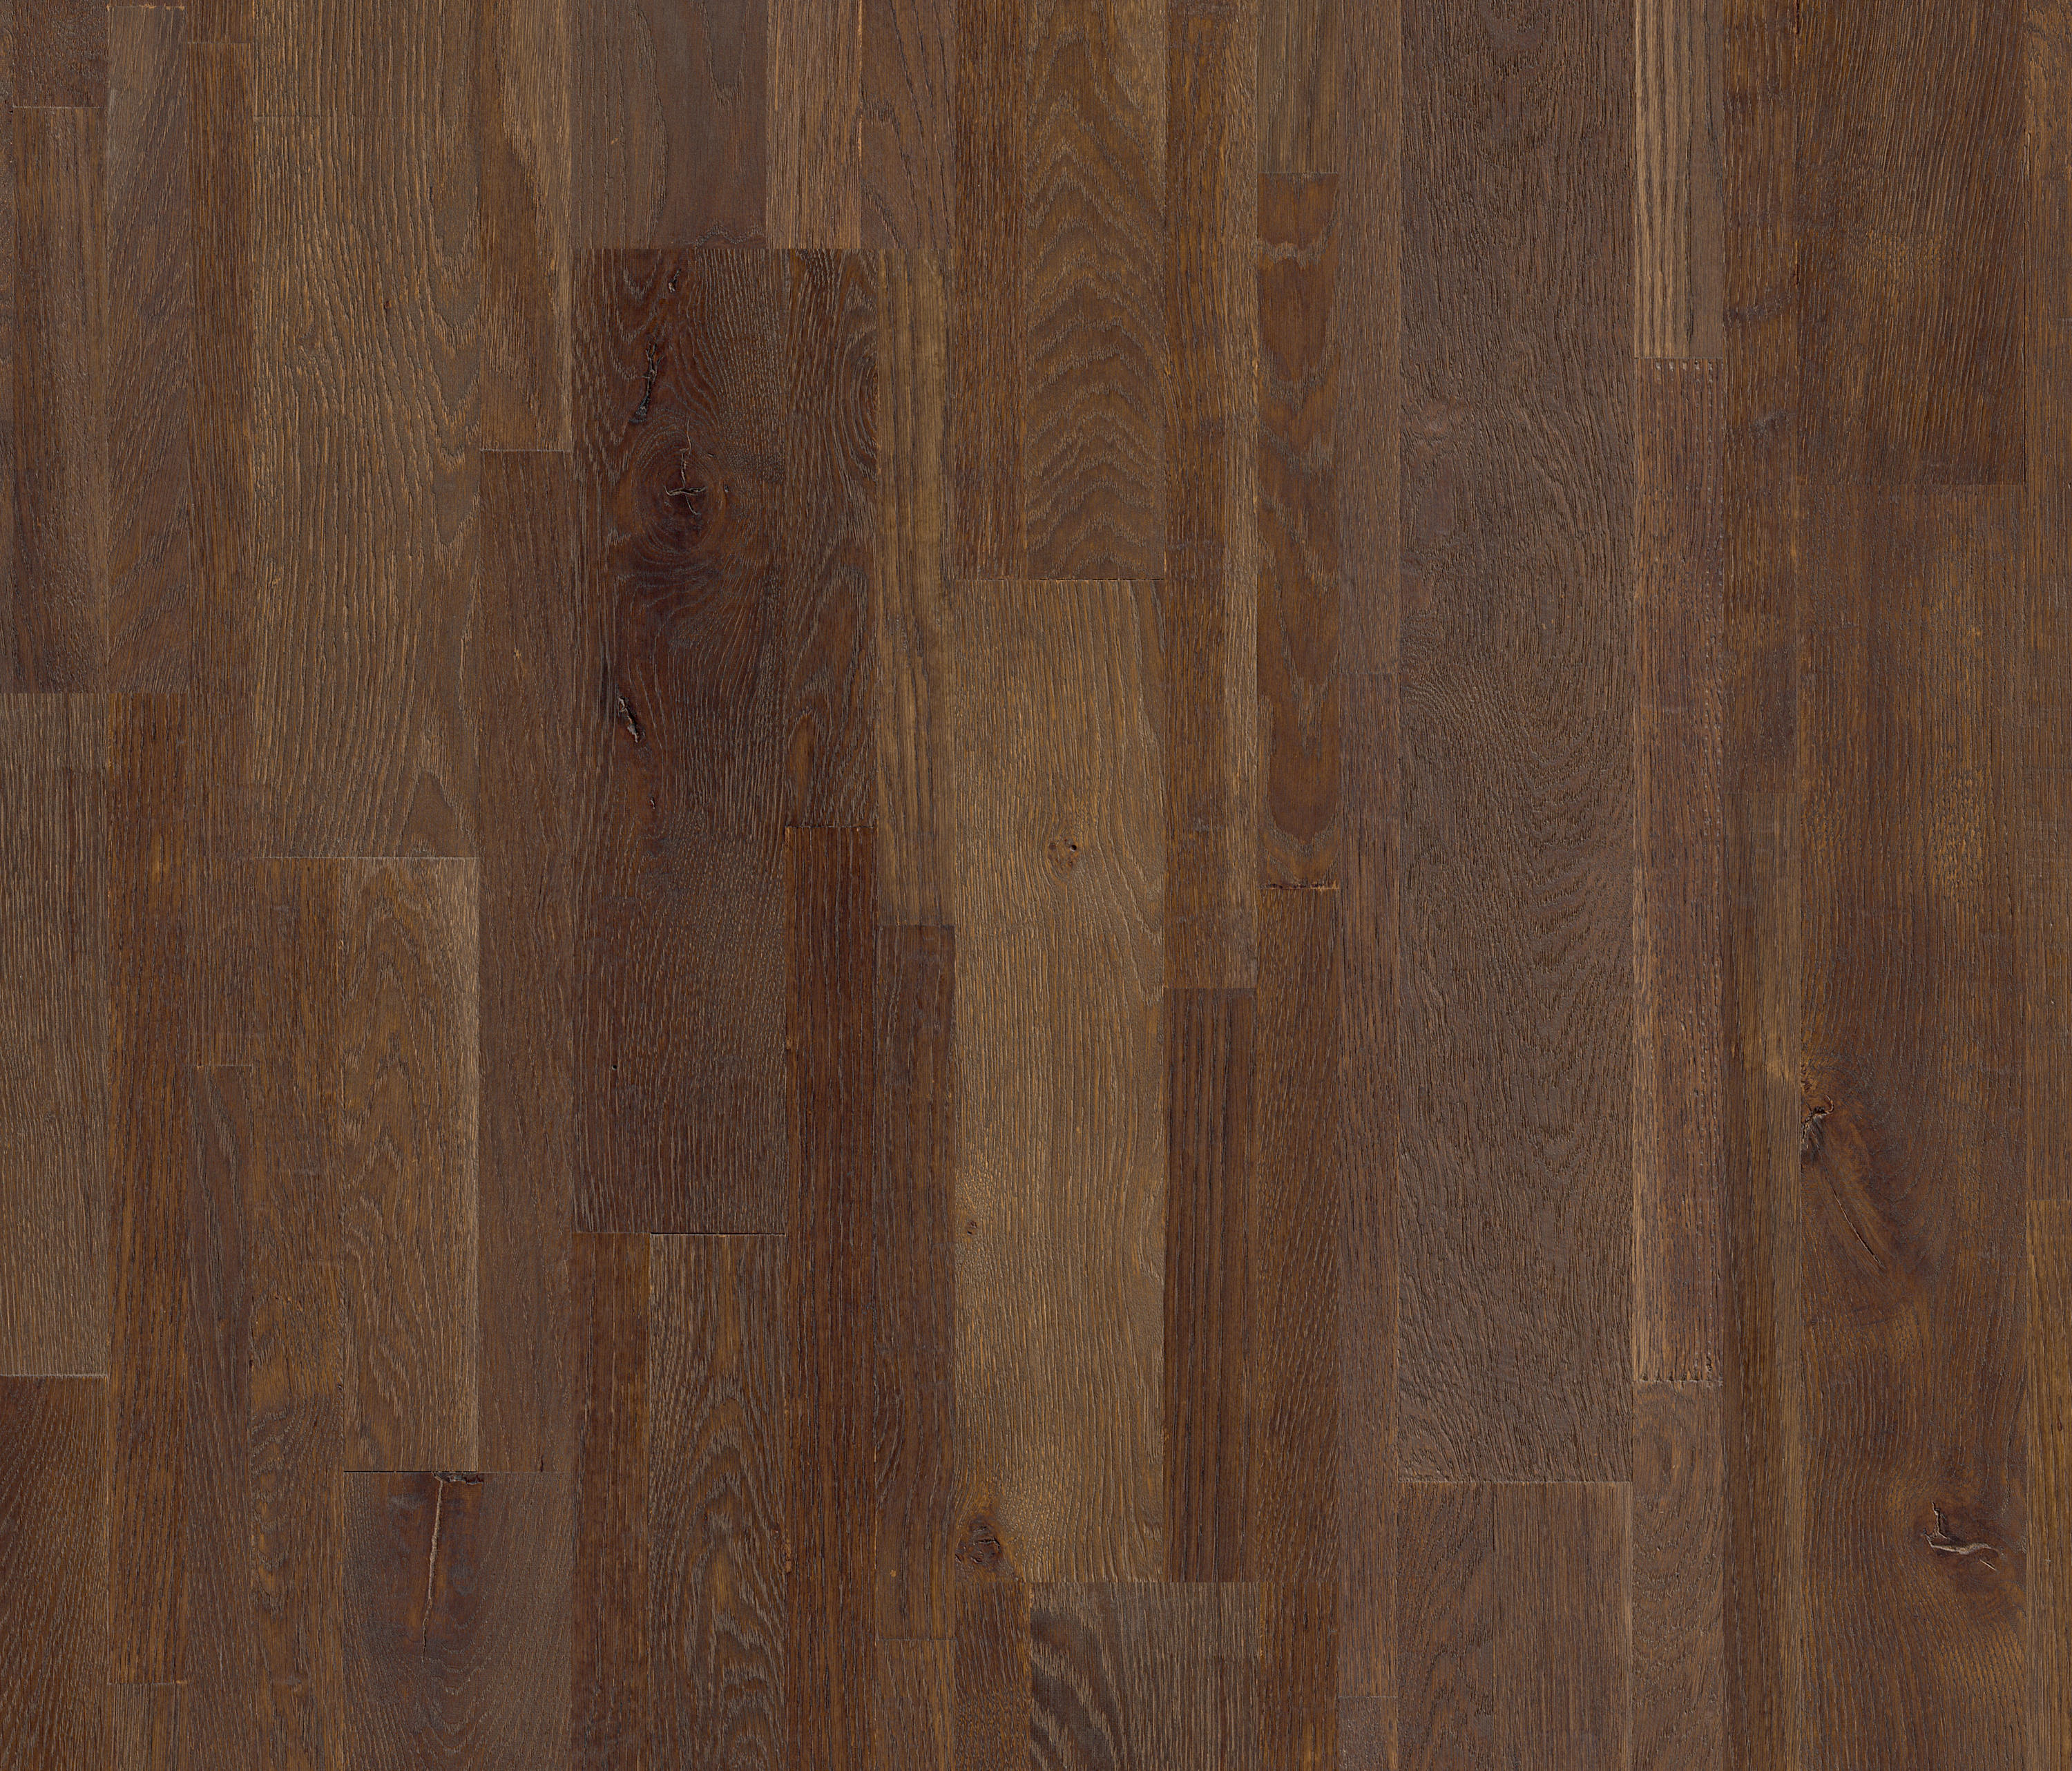 case mm length royal oak thick flooring wood laminate pergo floors sq x in ft xp wide p